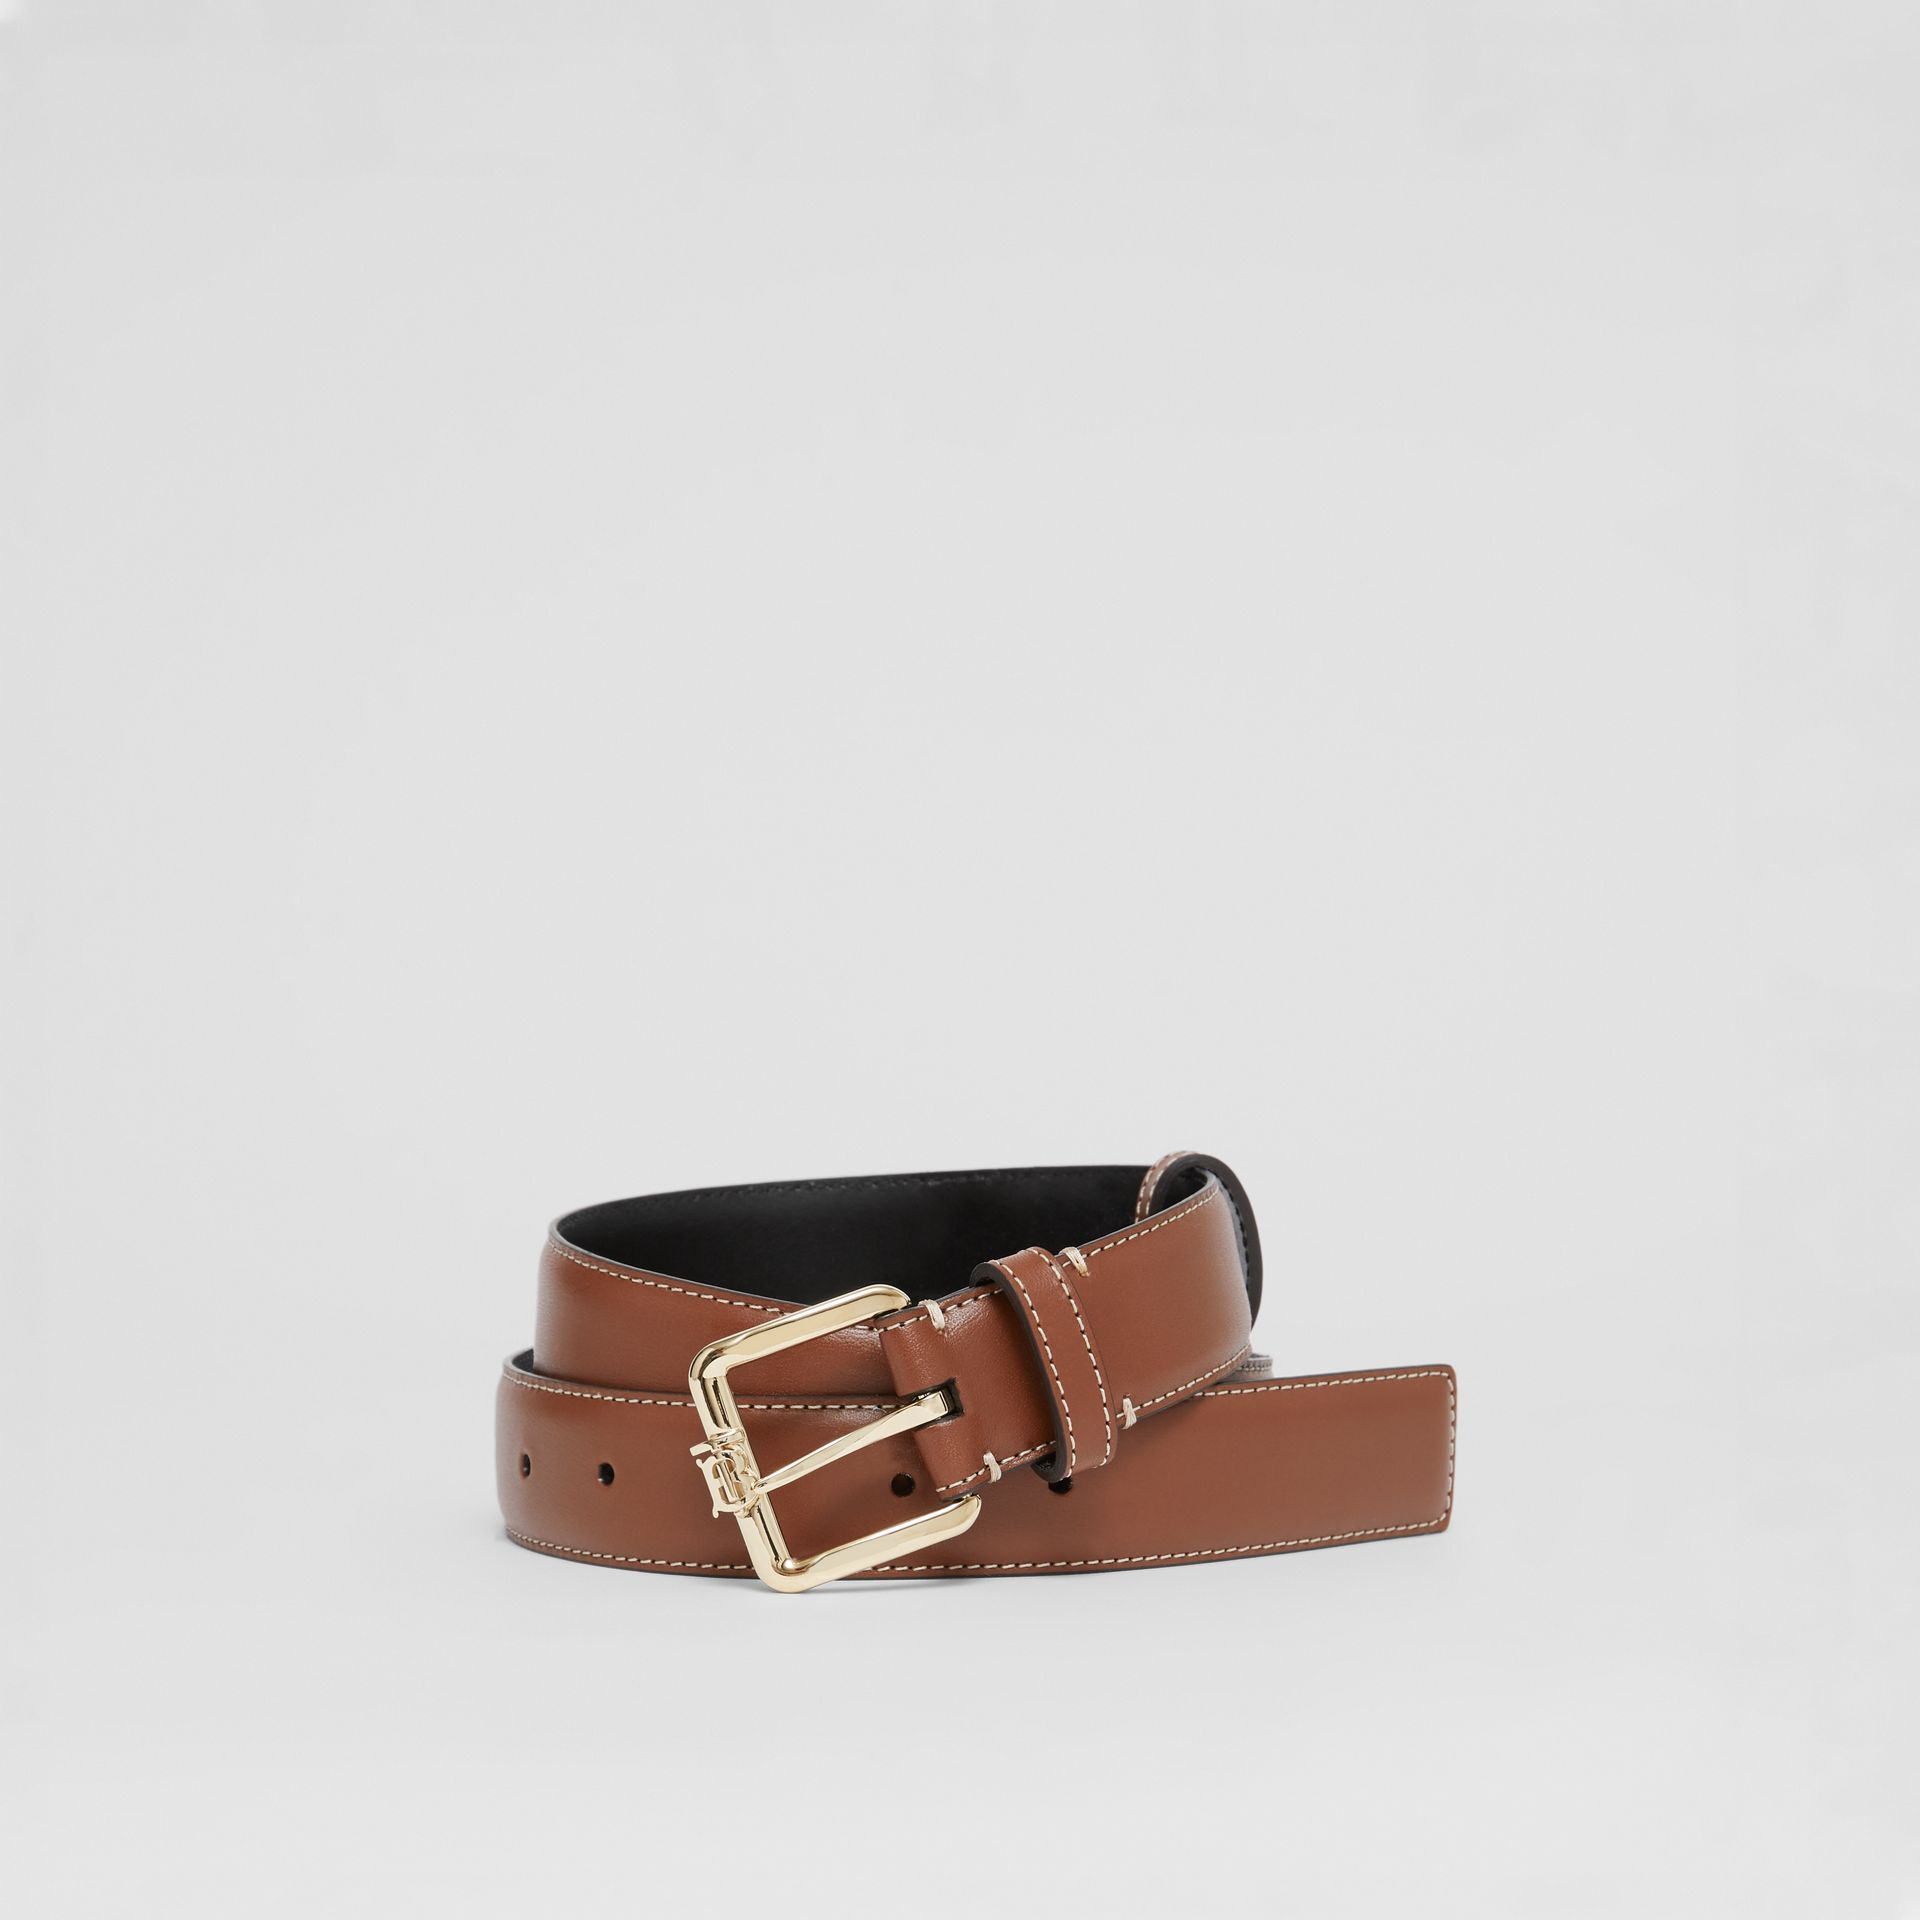 Monogram Motif Topstitched Leather Belt in Tan/light Gold - Women | Burberry - gallery image 0